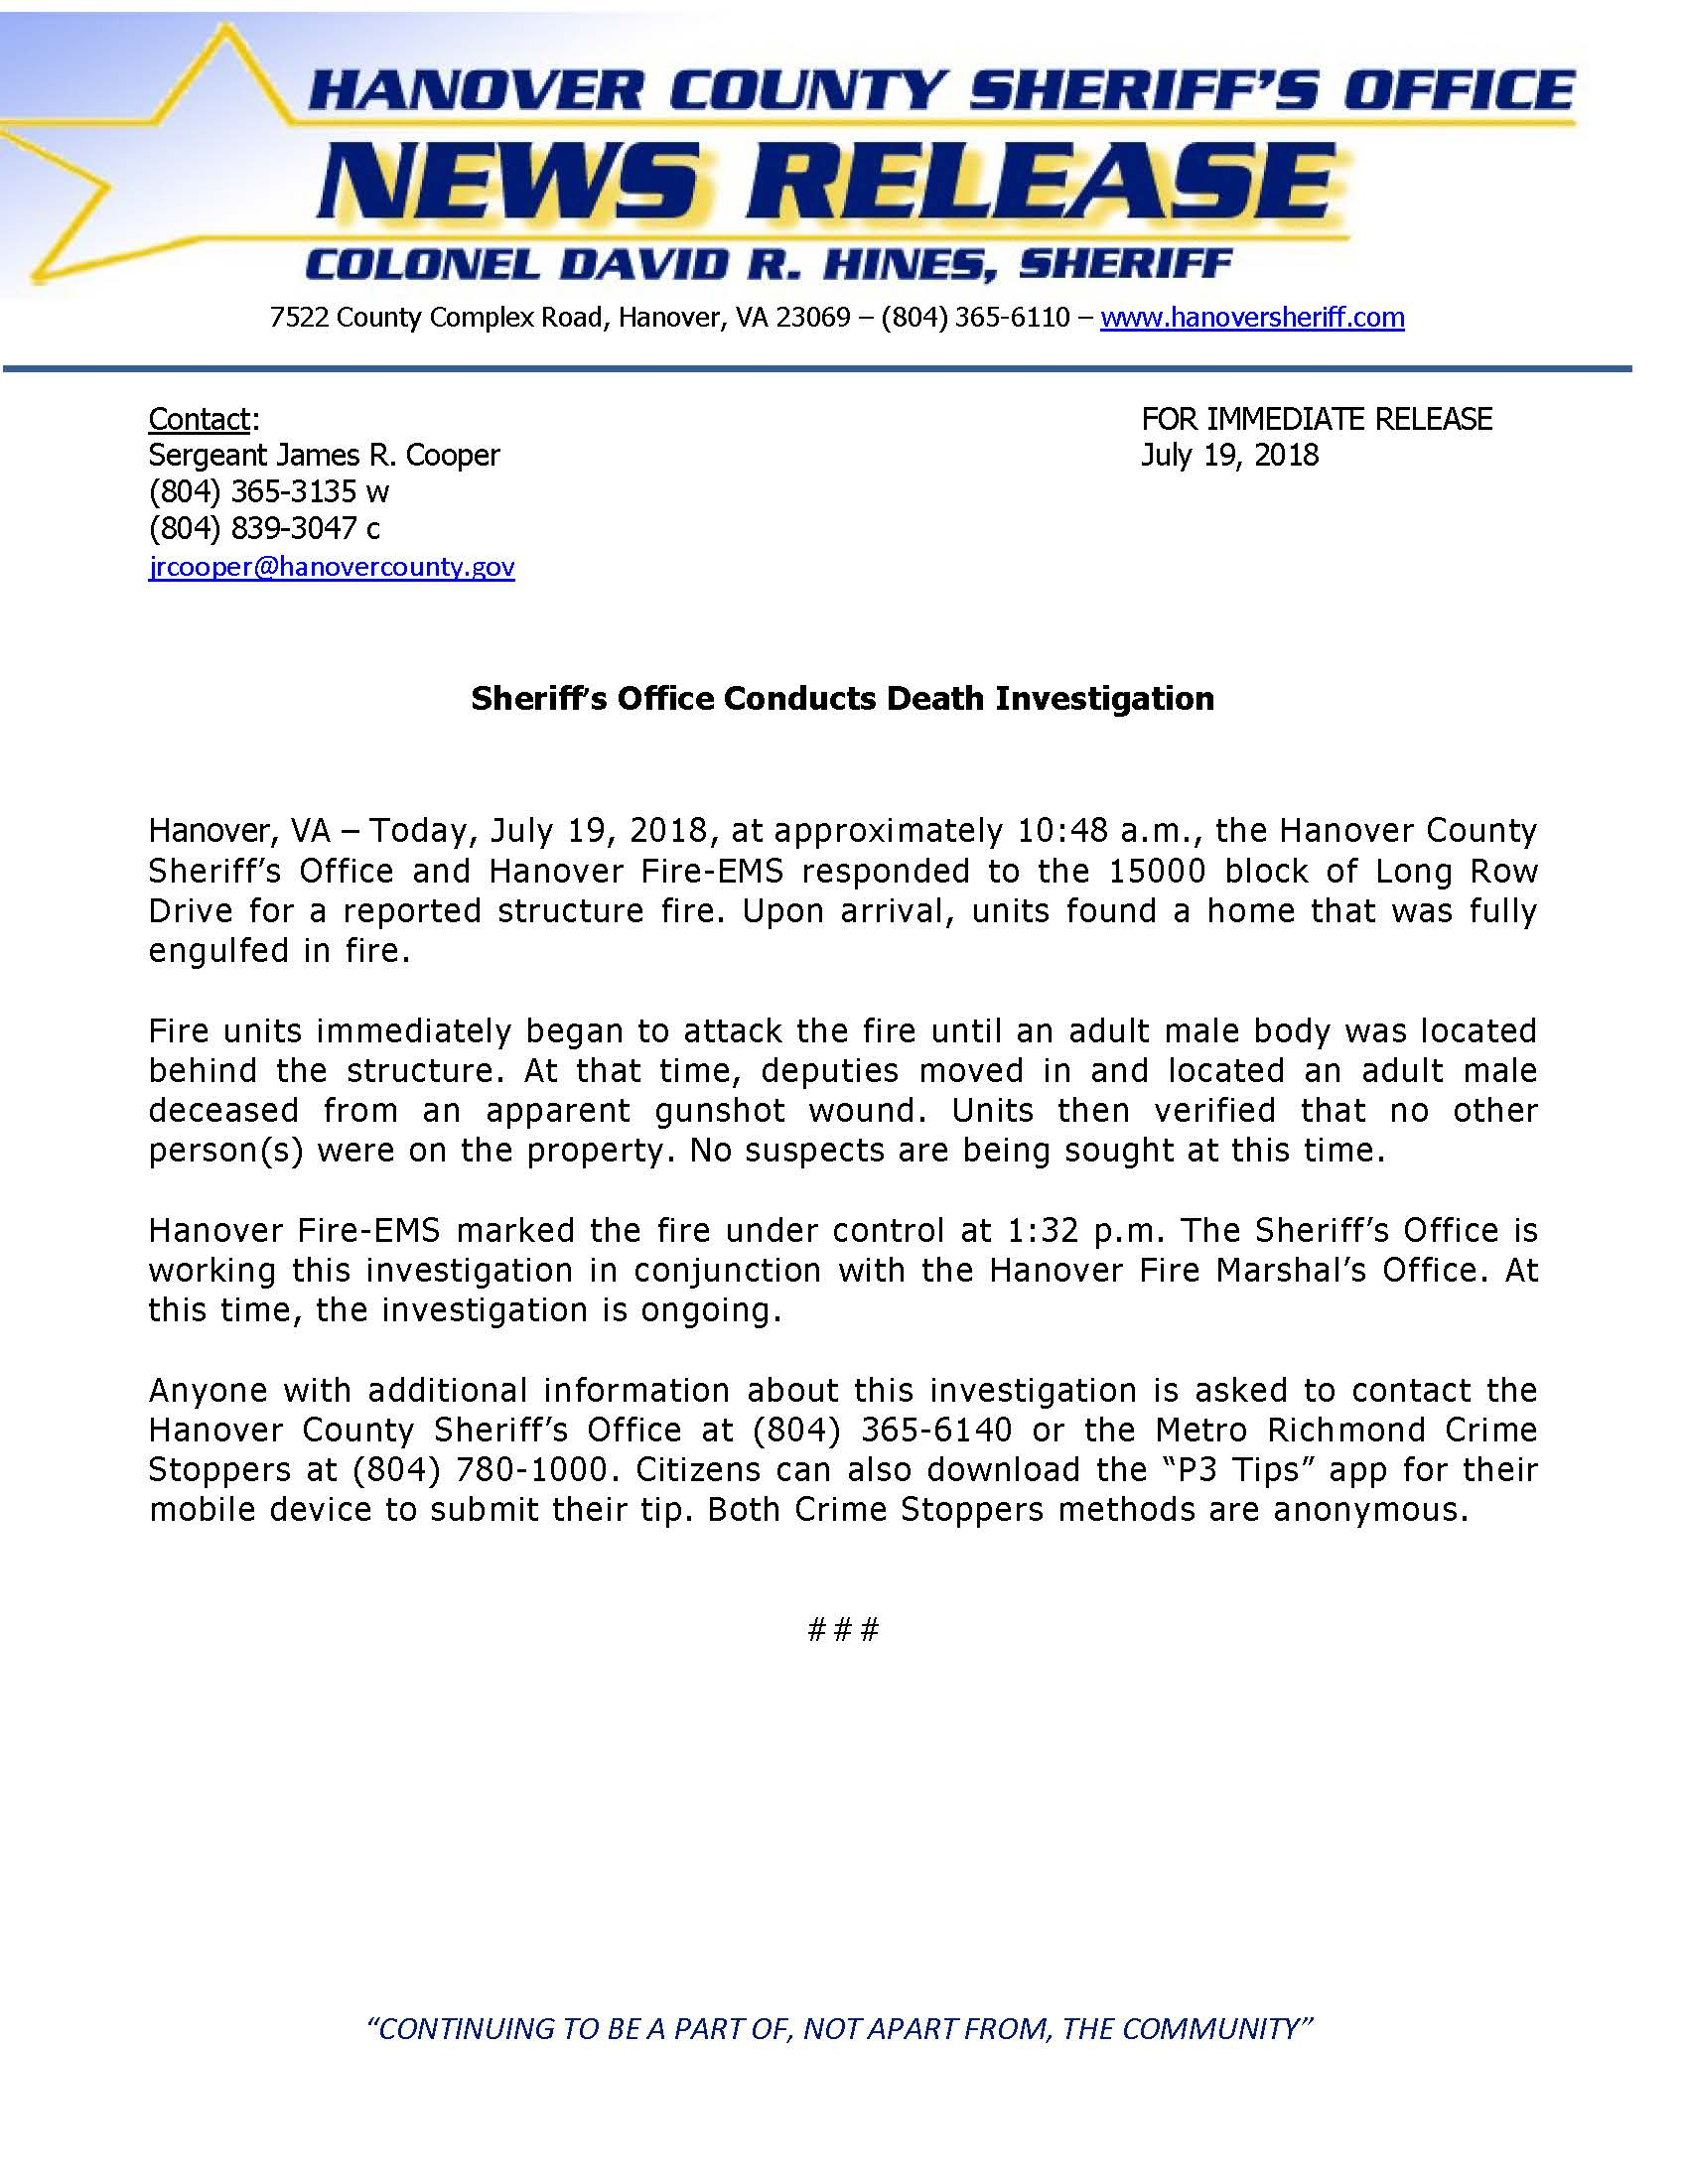 HCSO - Sheriffs Office Conducts Death Investigation- July 19, 2018